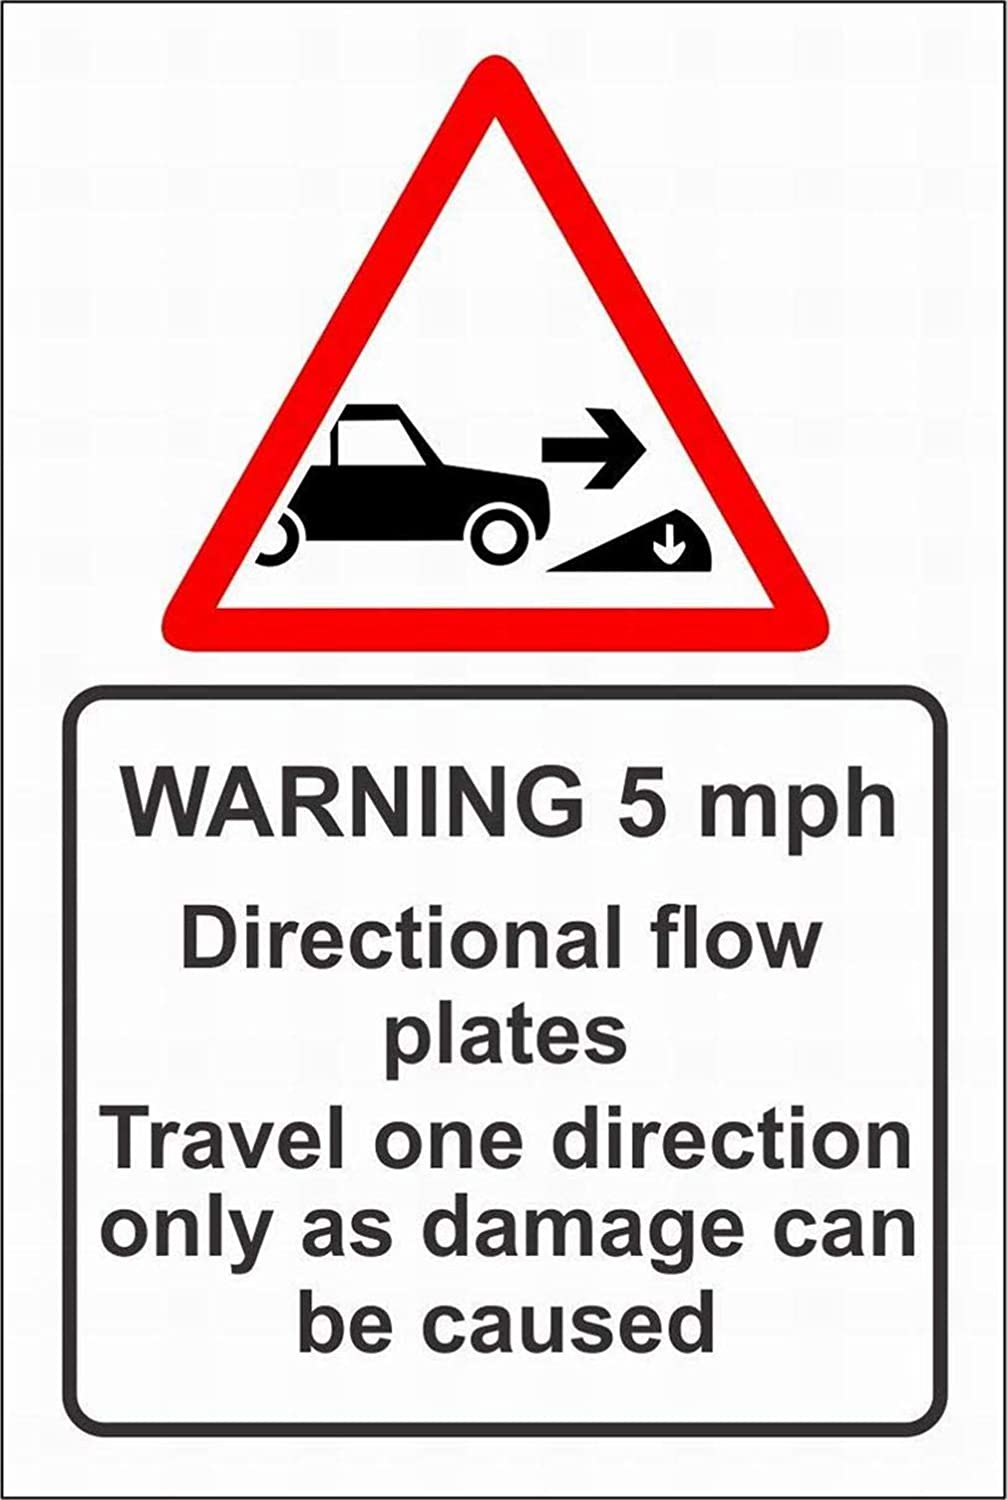 SUPVIVI Warning 5mph Directional Flow Plates Travel one Direction only as Damage can be Caused Sign Warning Danger Safety Notice Sign 8x12 Outdoor Street Sign